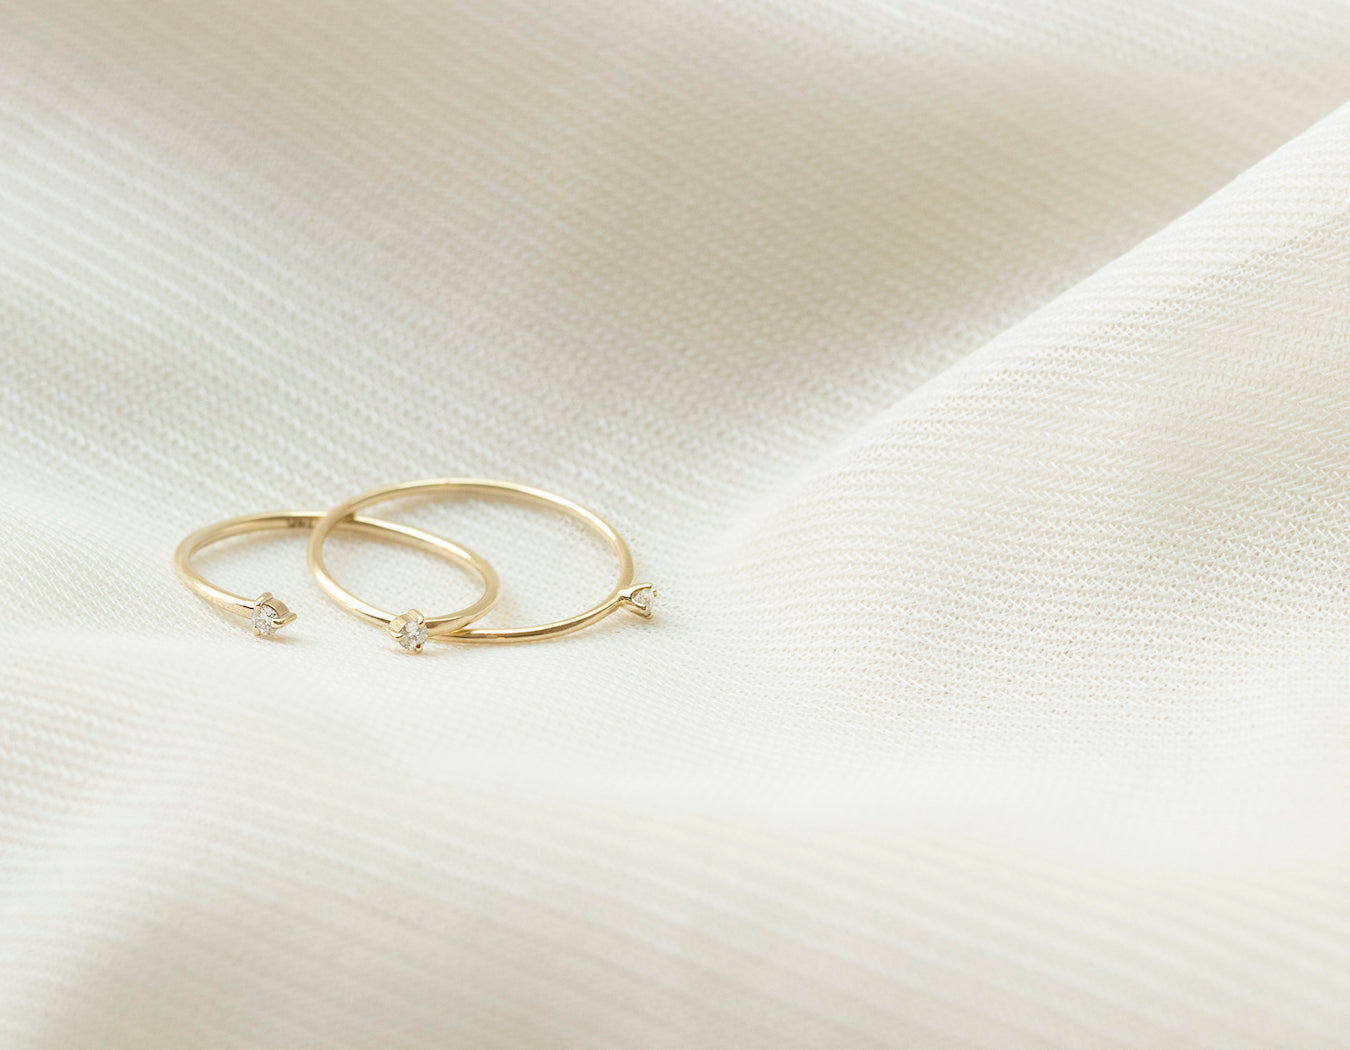 Vrai and oro minimalist small Constellation Stack bundle diamond solid gold rings